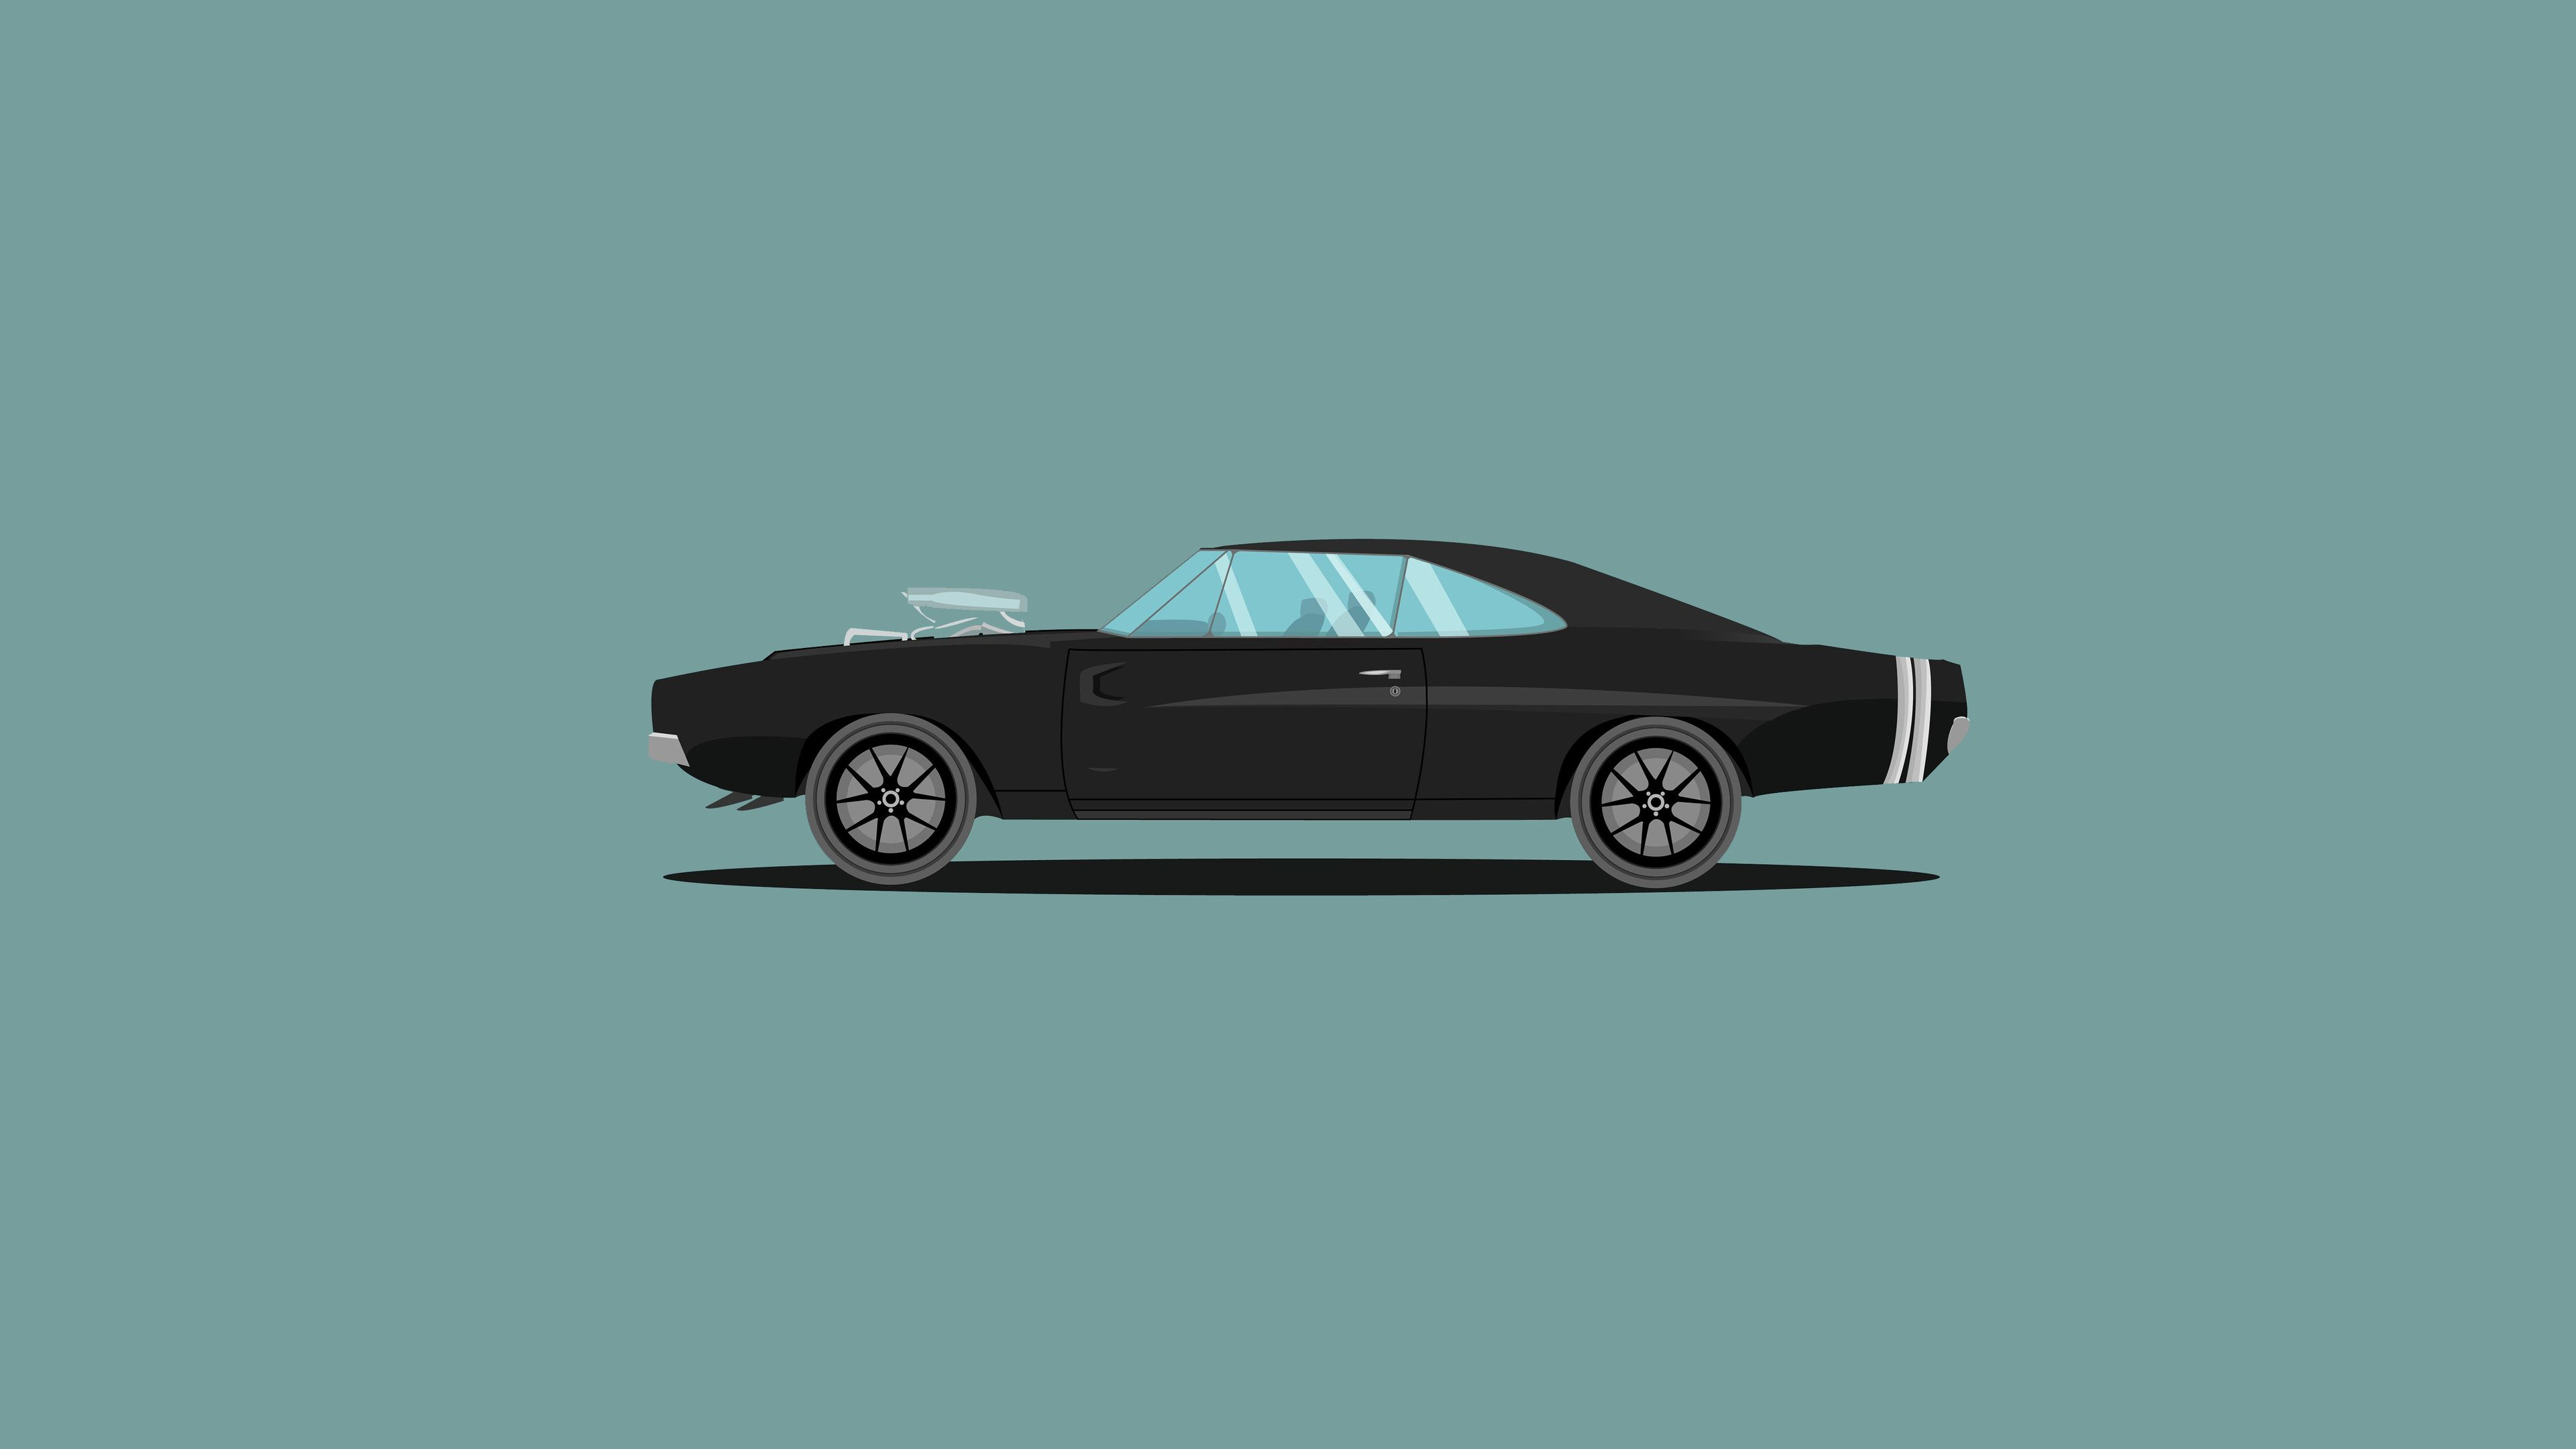 1970 Dodge Charger Fast And Furious Edition Illustration Hd Wallpapers Dodge Charger Wallpapers Cars Wallpapers In 2020 Dodge Charger Fast And Furious Car Wallpapers